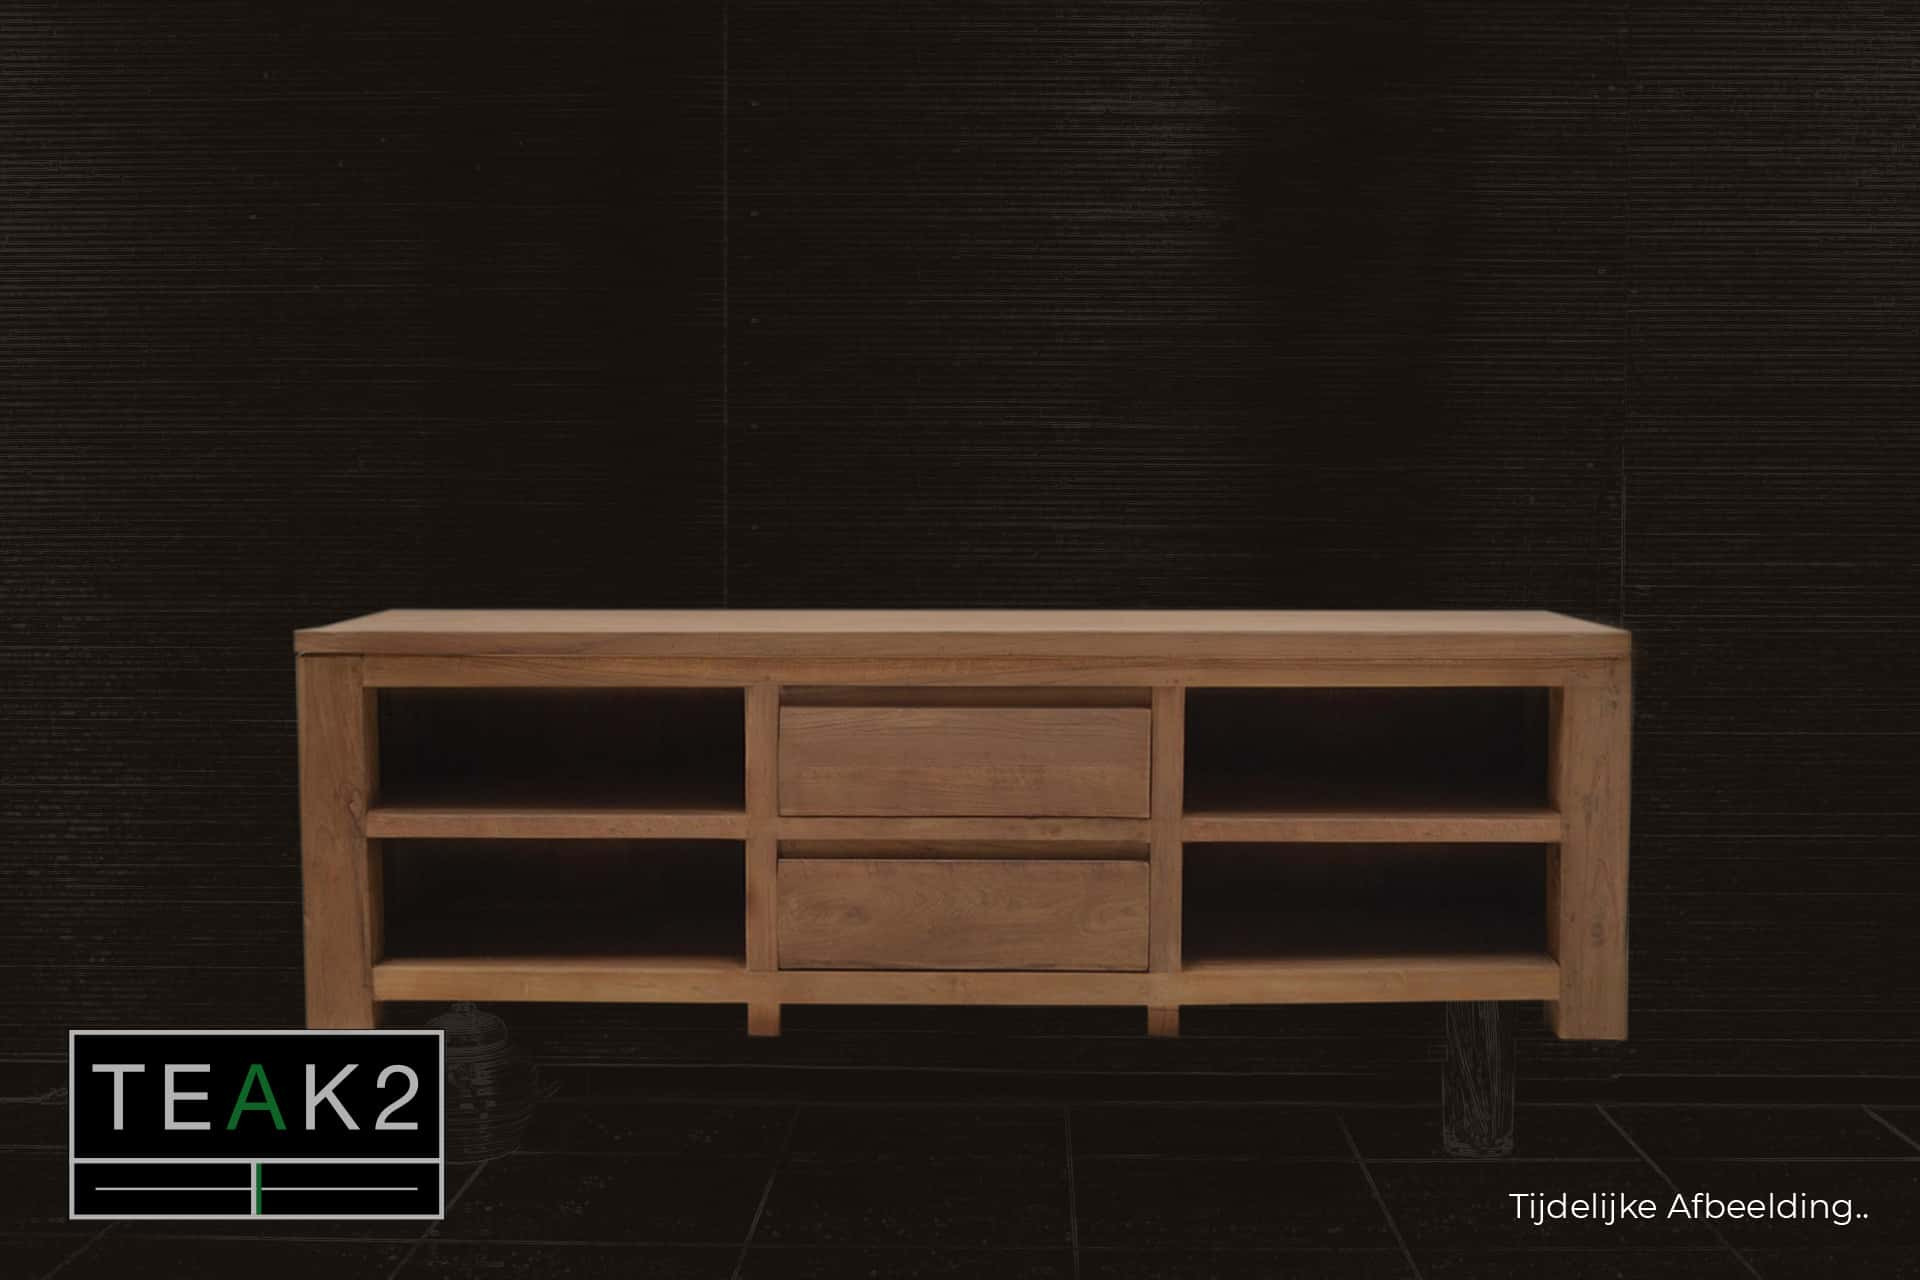 Teak Baru TV180TL Old | teakhouten design Tv meubel, lades in het midden en open vakken. Moderne Tv kast of Tv dressoir in massief oud teak - TEAK2.